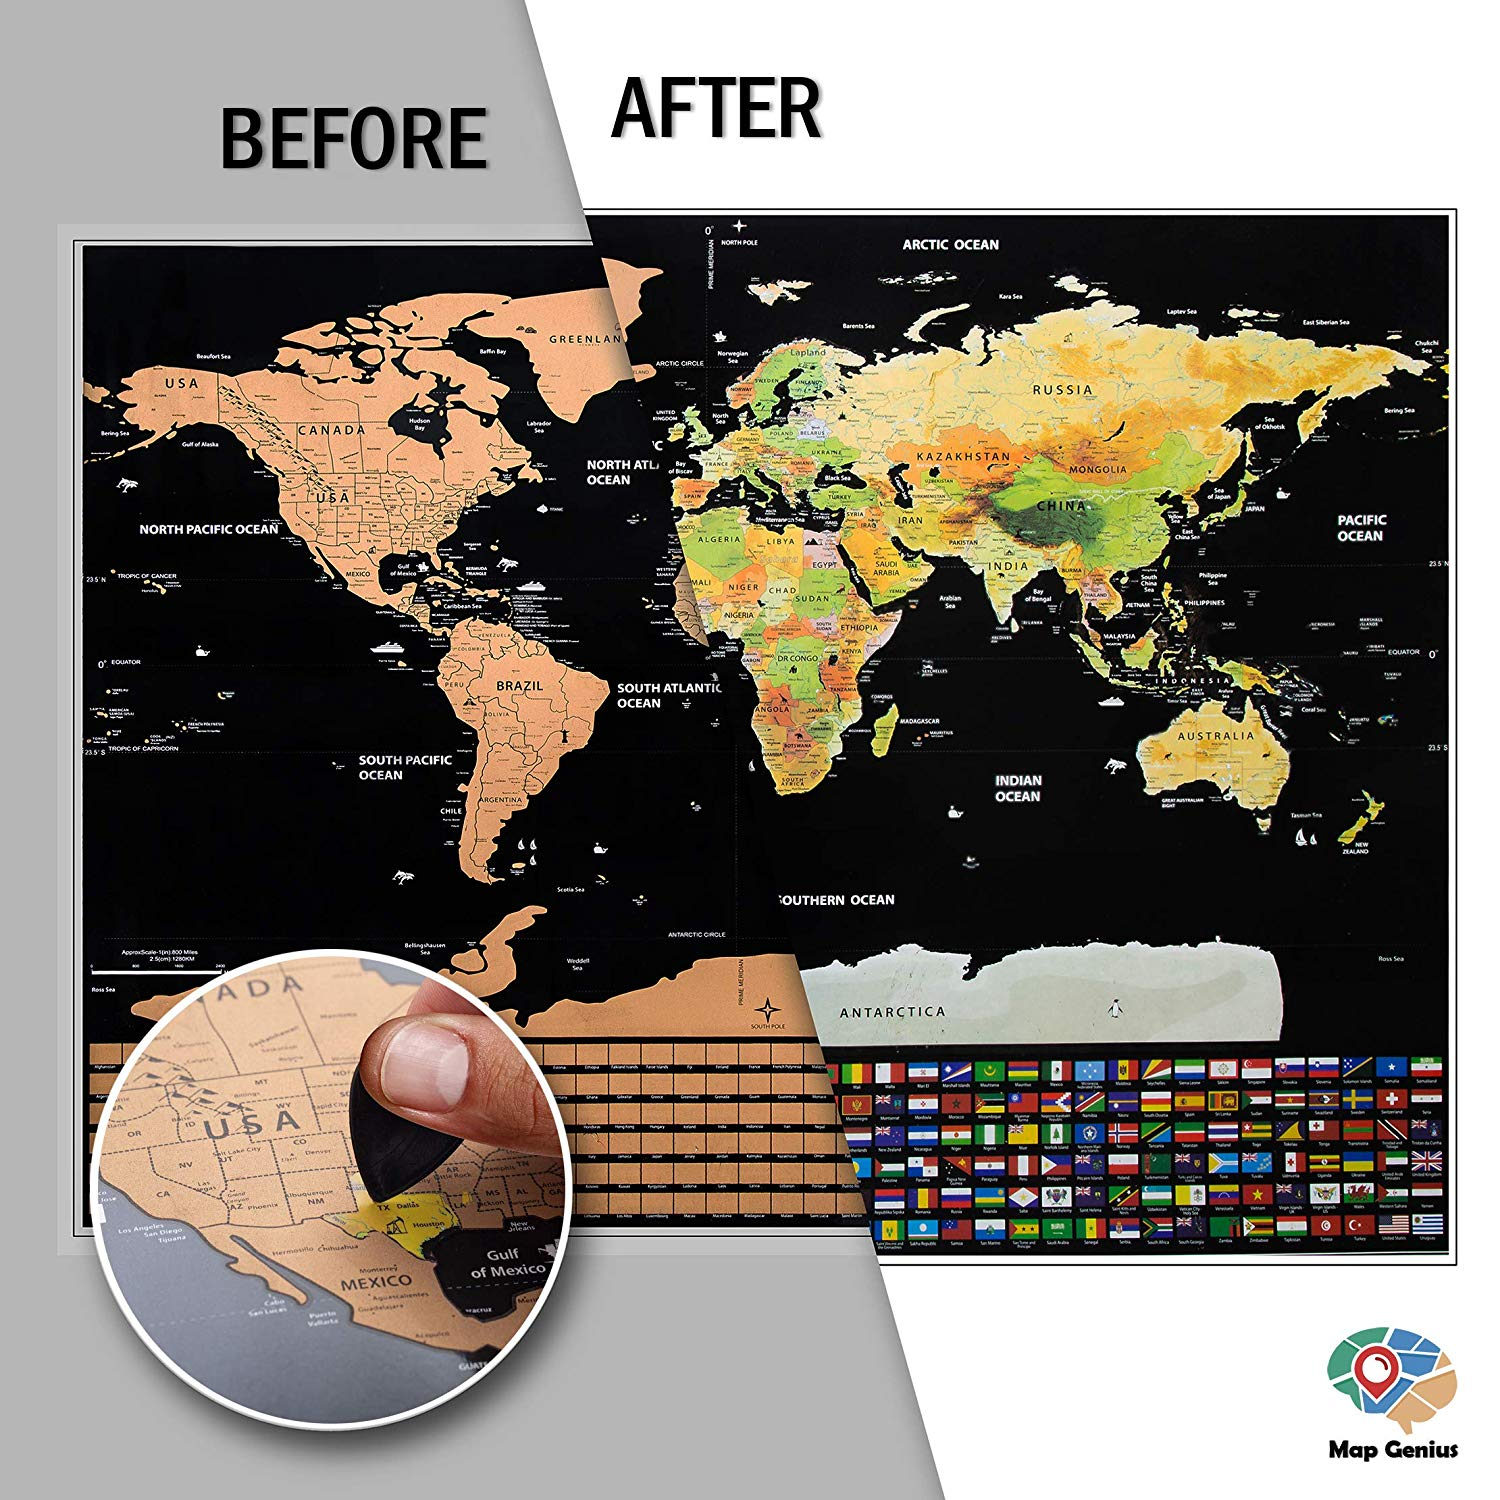 Scratch Off World Map Poster + Deluxe United States Map –Includes Complete Accessories Set & All Country Flags – Premium Wall Art Gift for Travelers